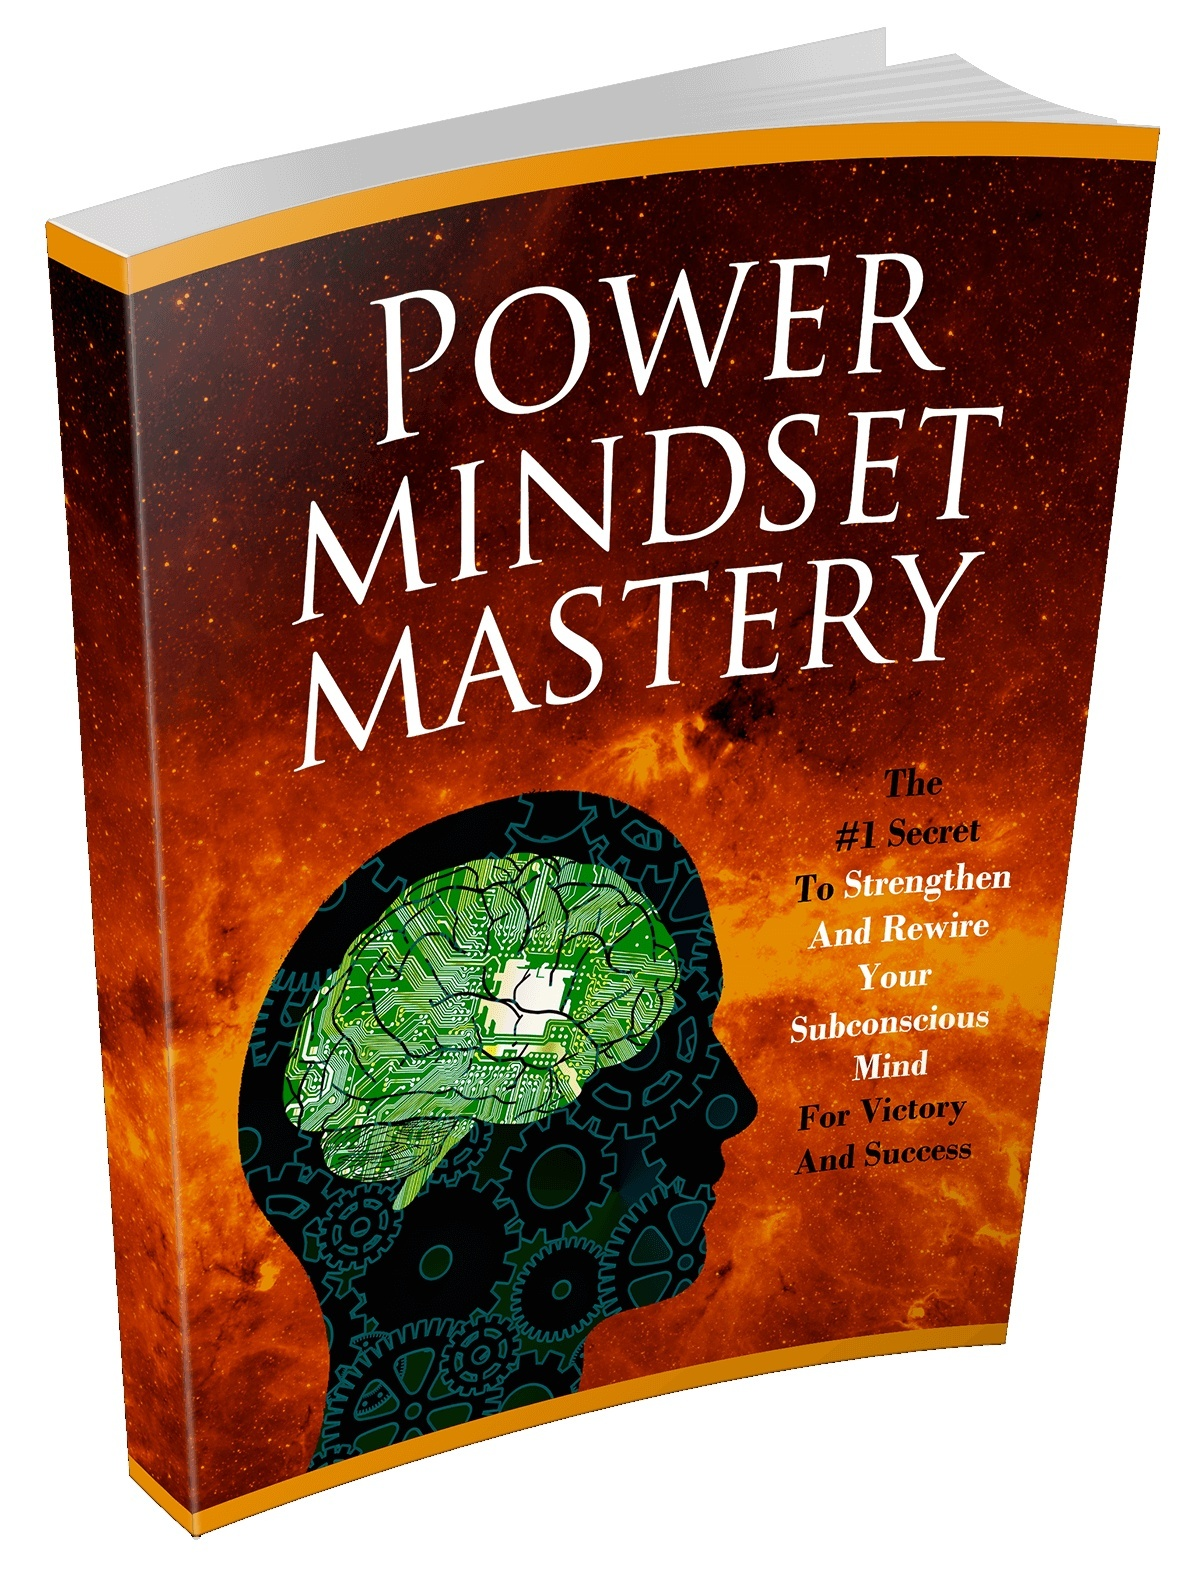 Power Mindset Mastery Guide 1